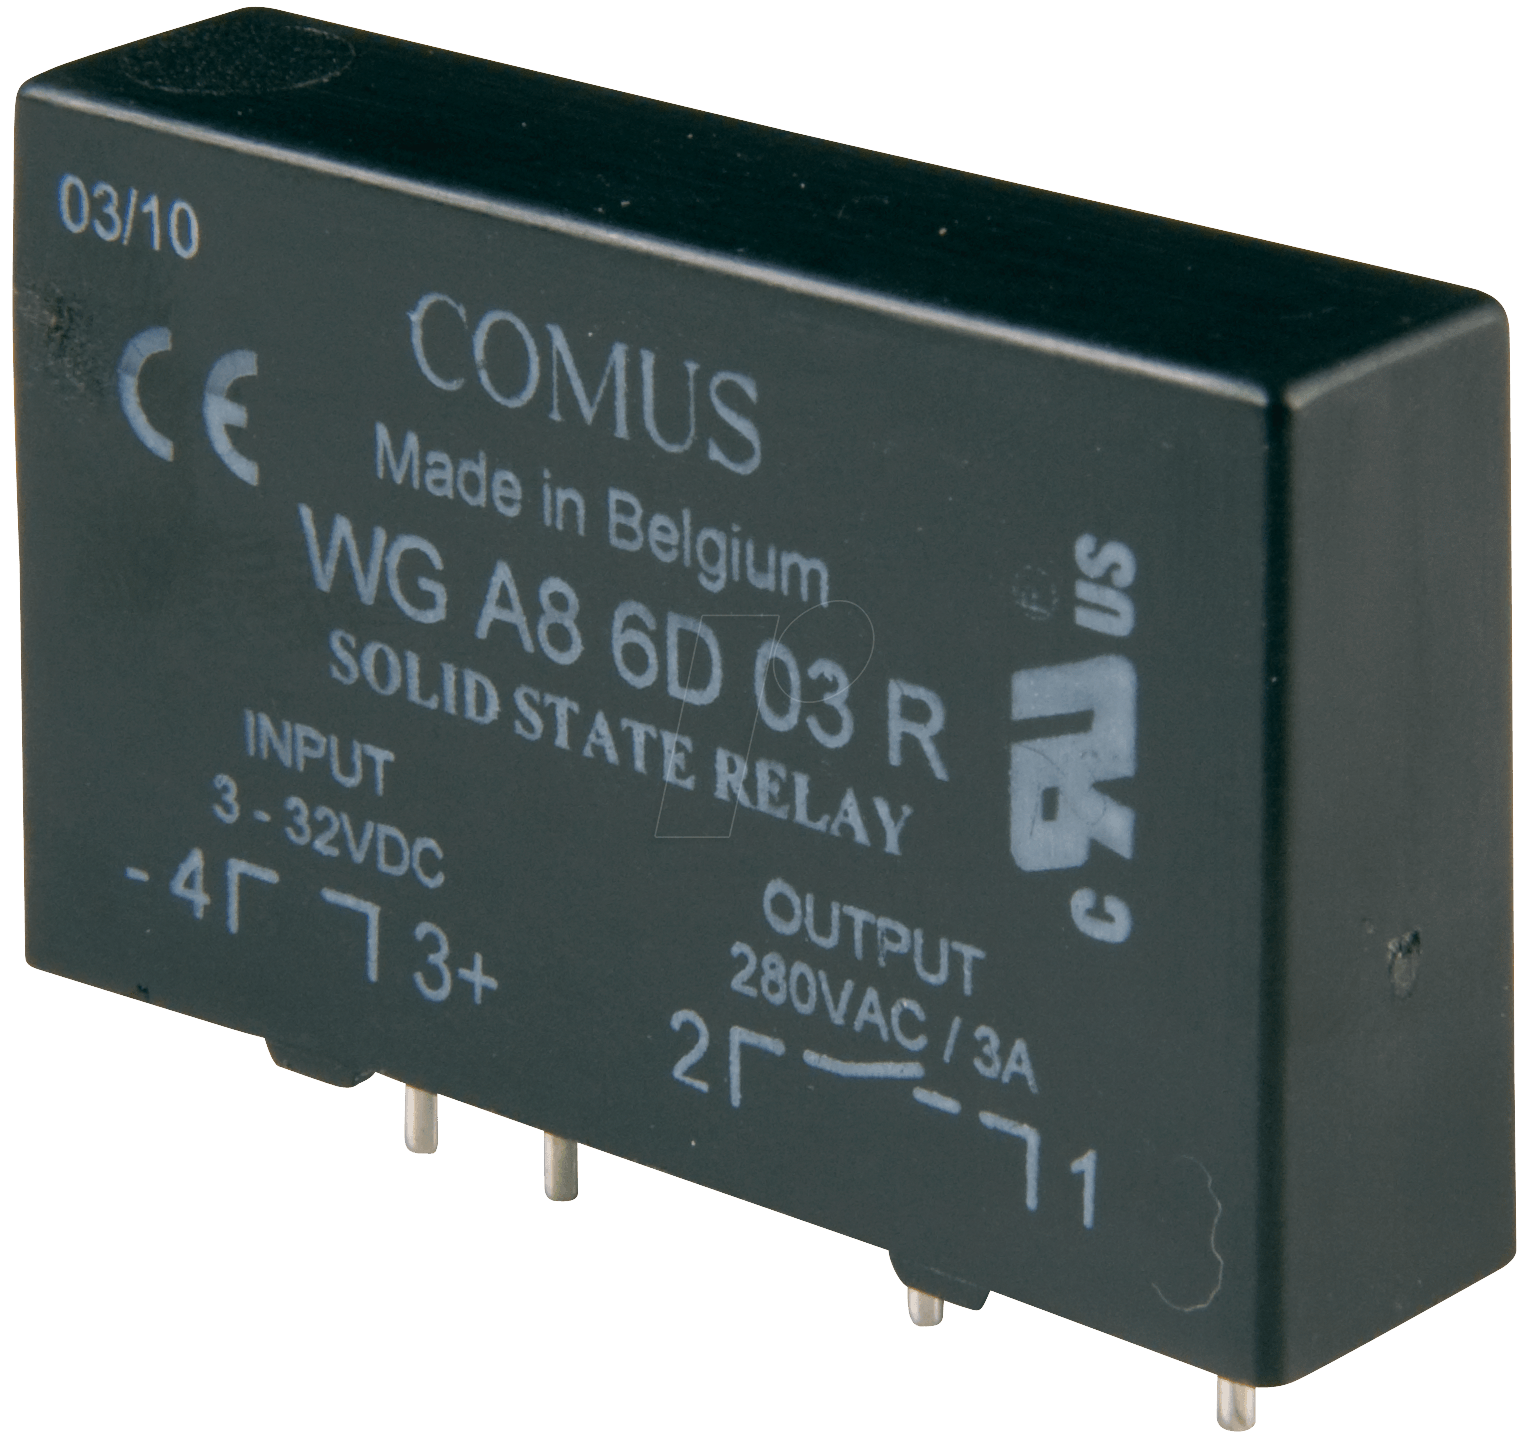 Wga 8 6d03 Solid State Relays Vctrl 3 32 V Dc Vload24 420 Relay Working